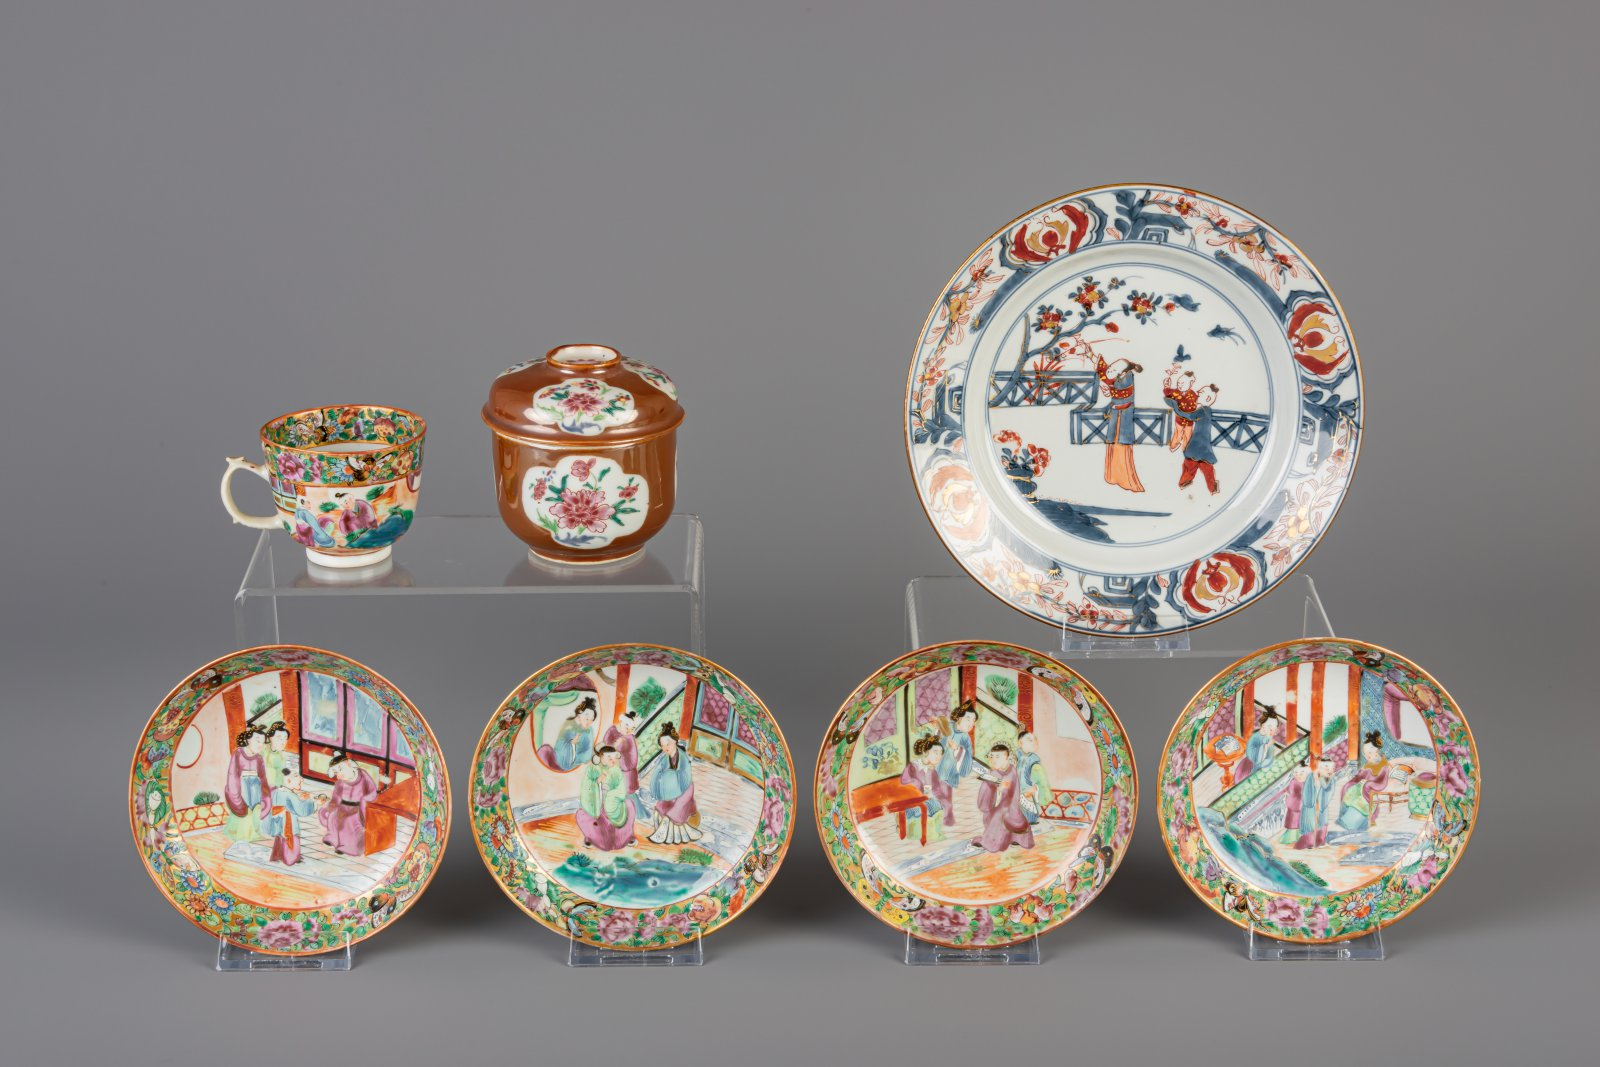 Lot 4 - A varied collection of Chinese porcelain, 18th/19th C.